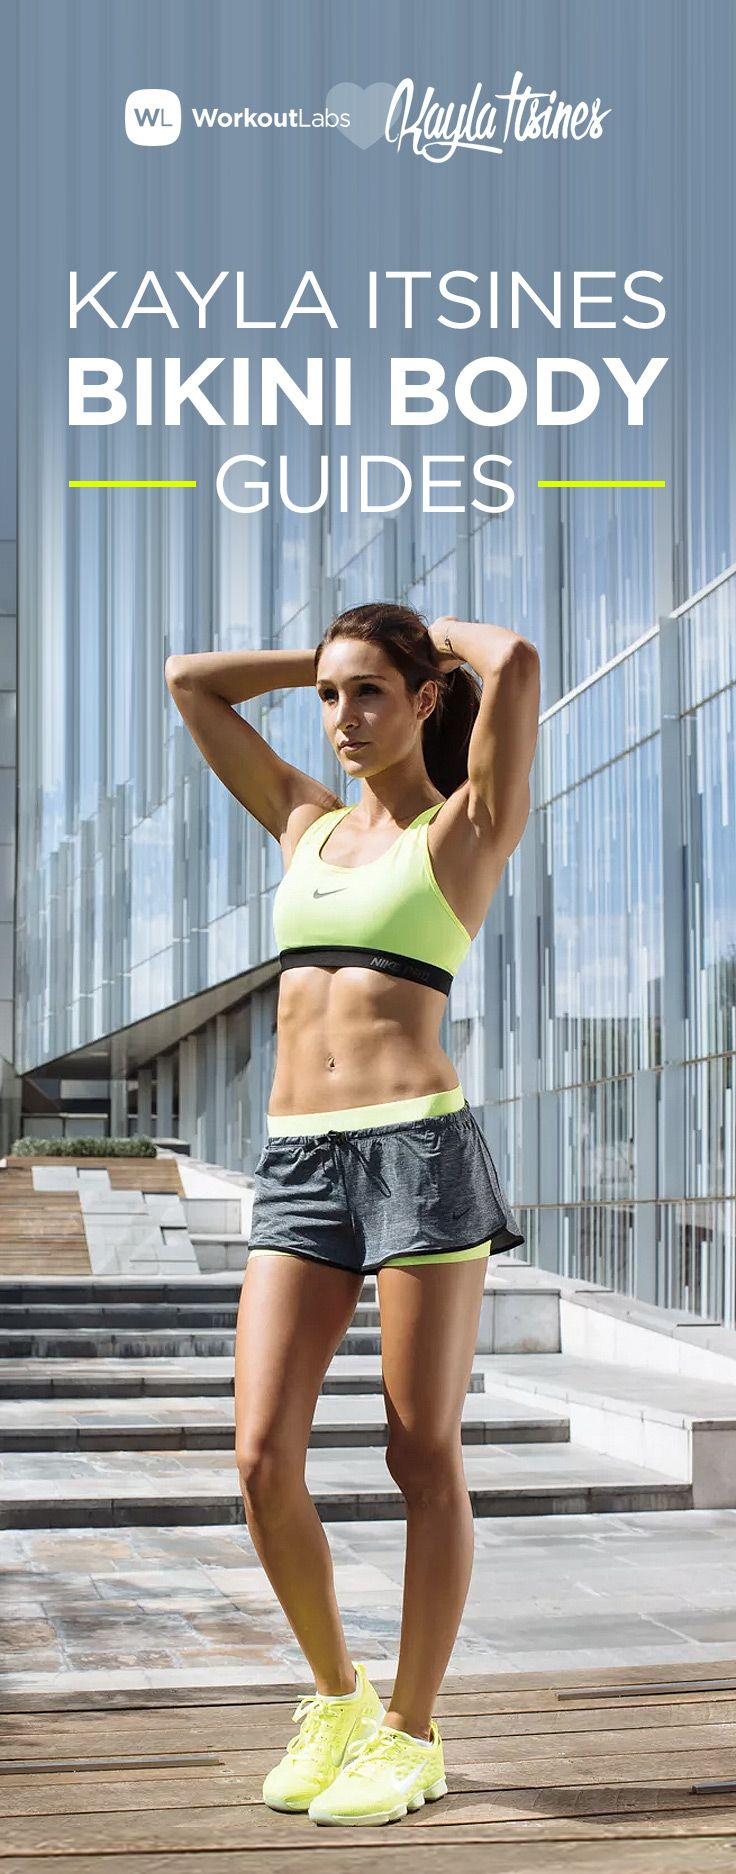 Earn your bikini body with Kayla Itsines' BBG workout and nutrition guides with our review: http://workoutlabs.com/s/9JPkx